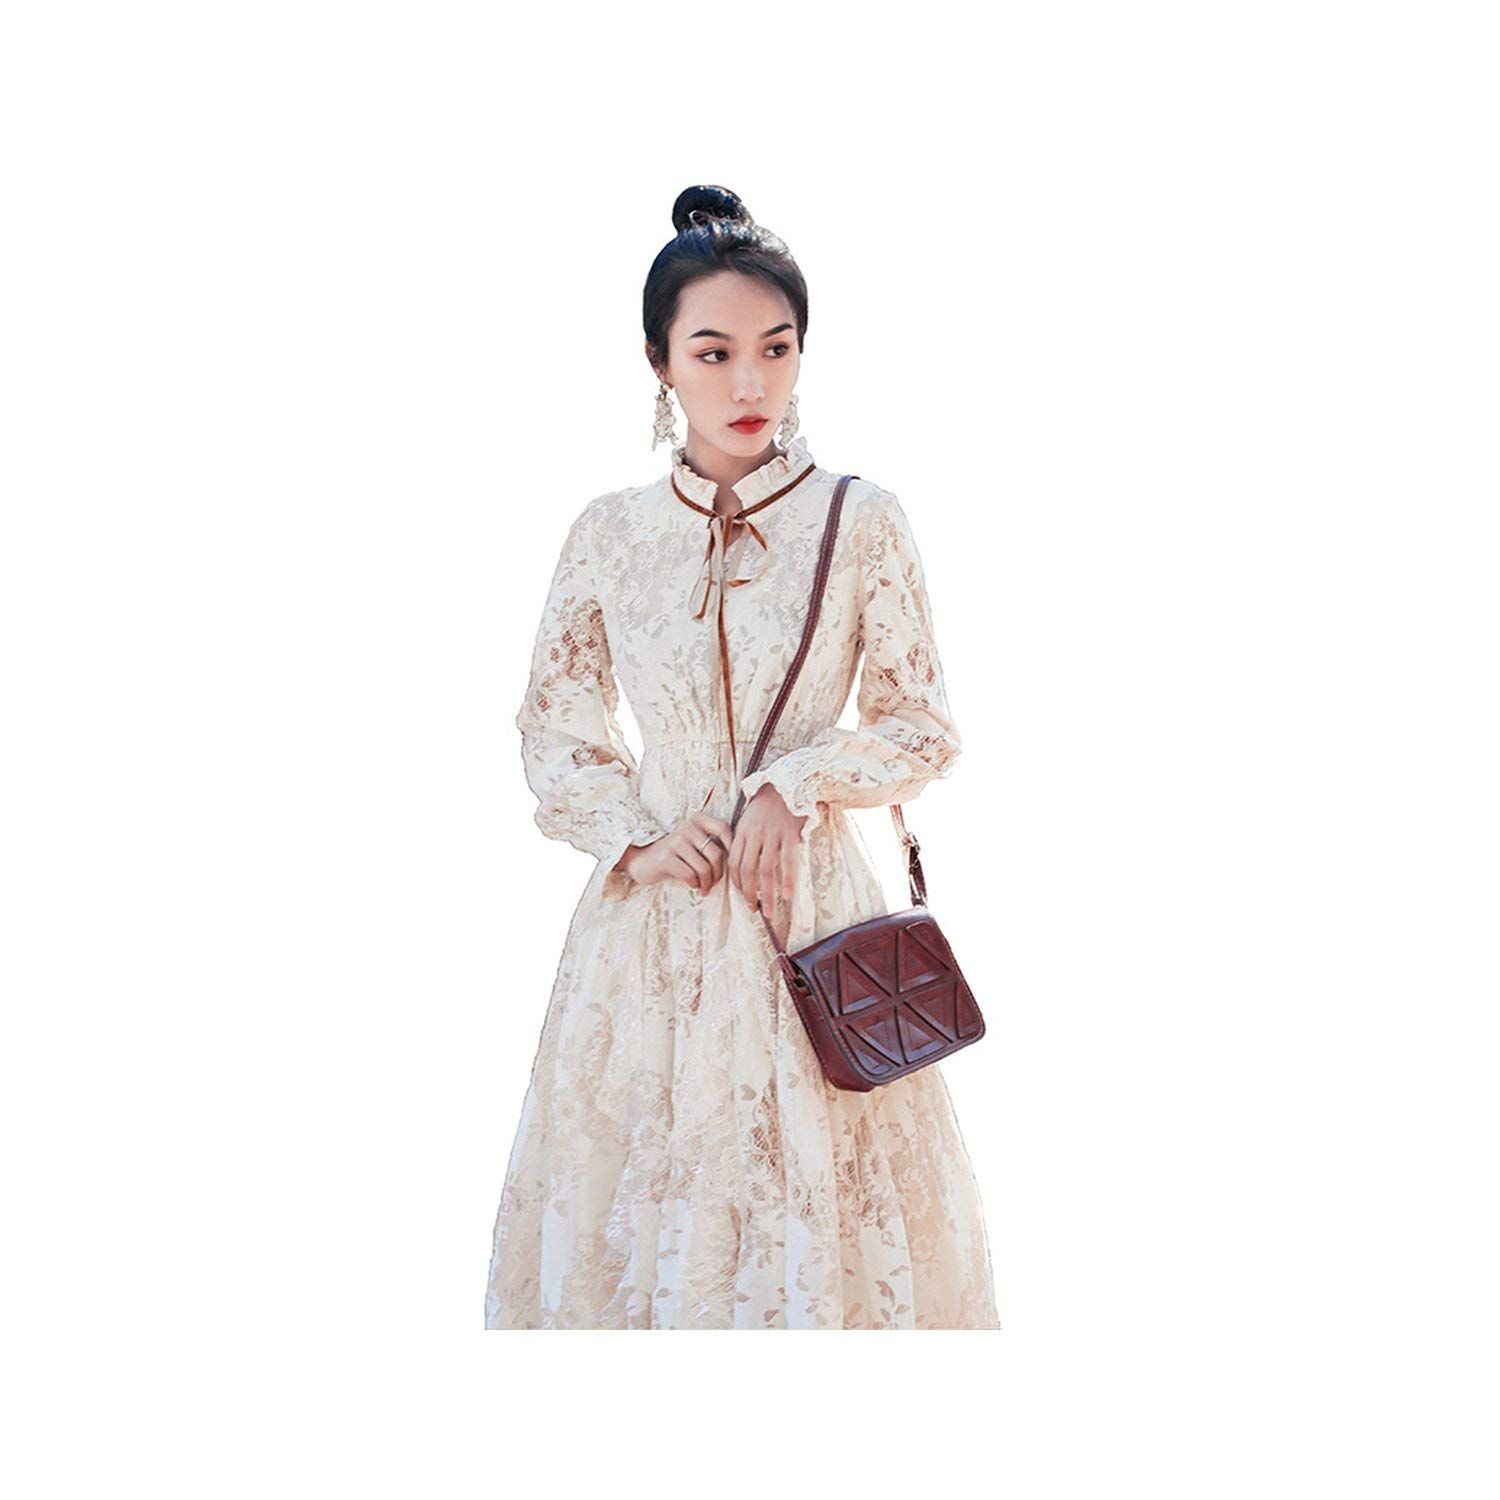 Vintage French Beige Lace Dress Spring Autumn Style Long Sleeve Slim Flared Sleeve Long Dress,Apricot,M